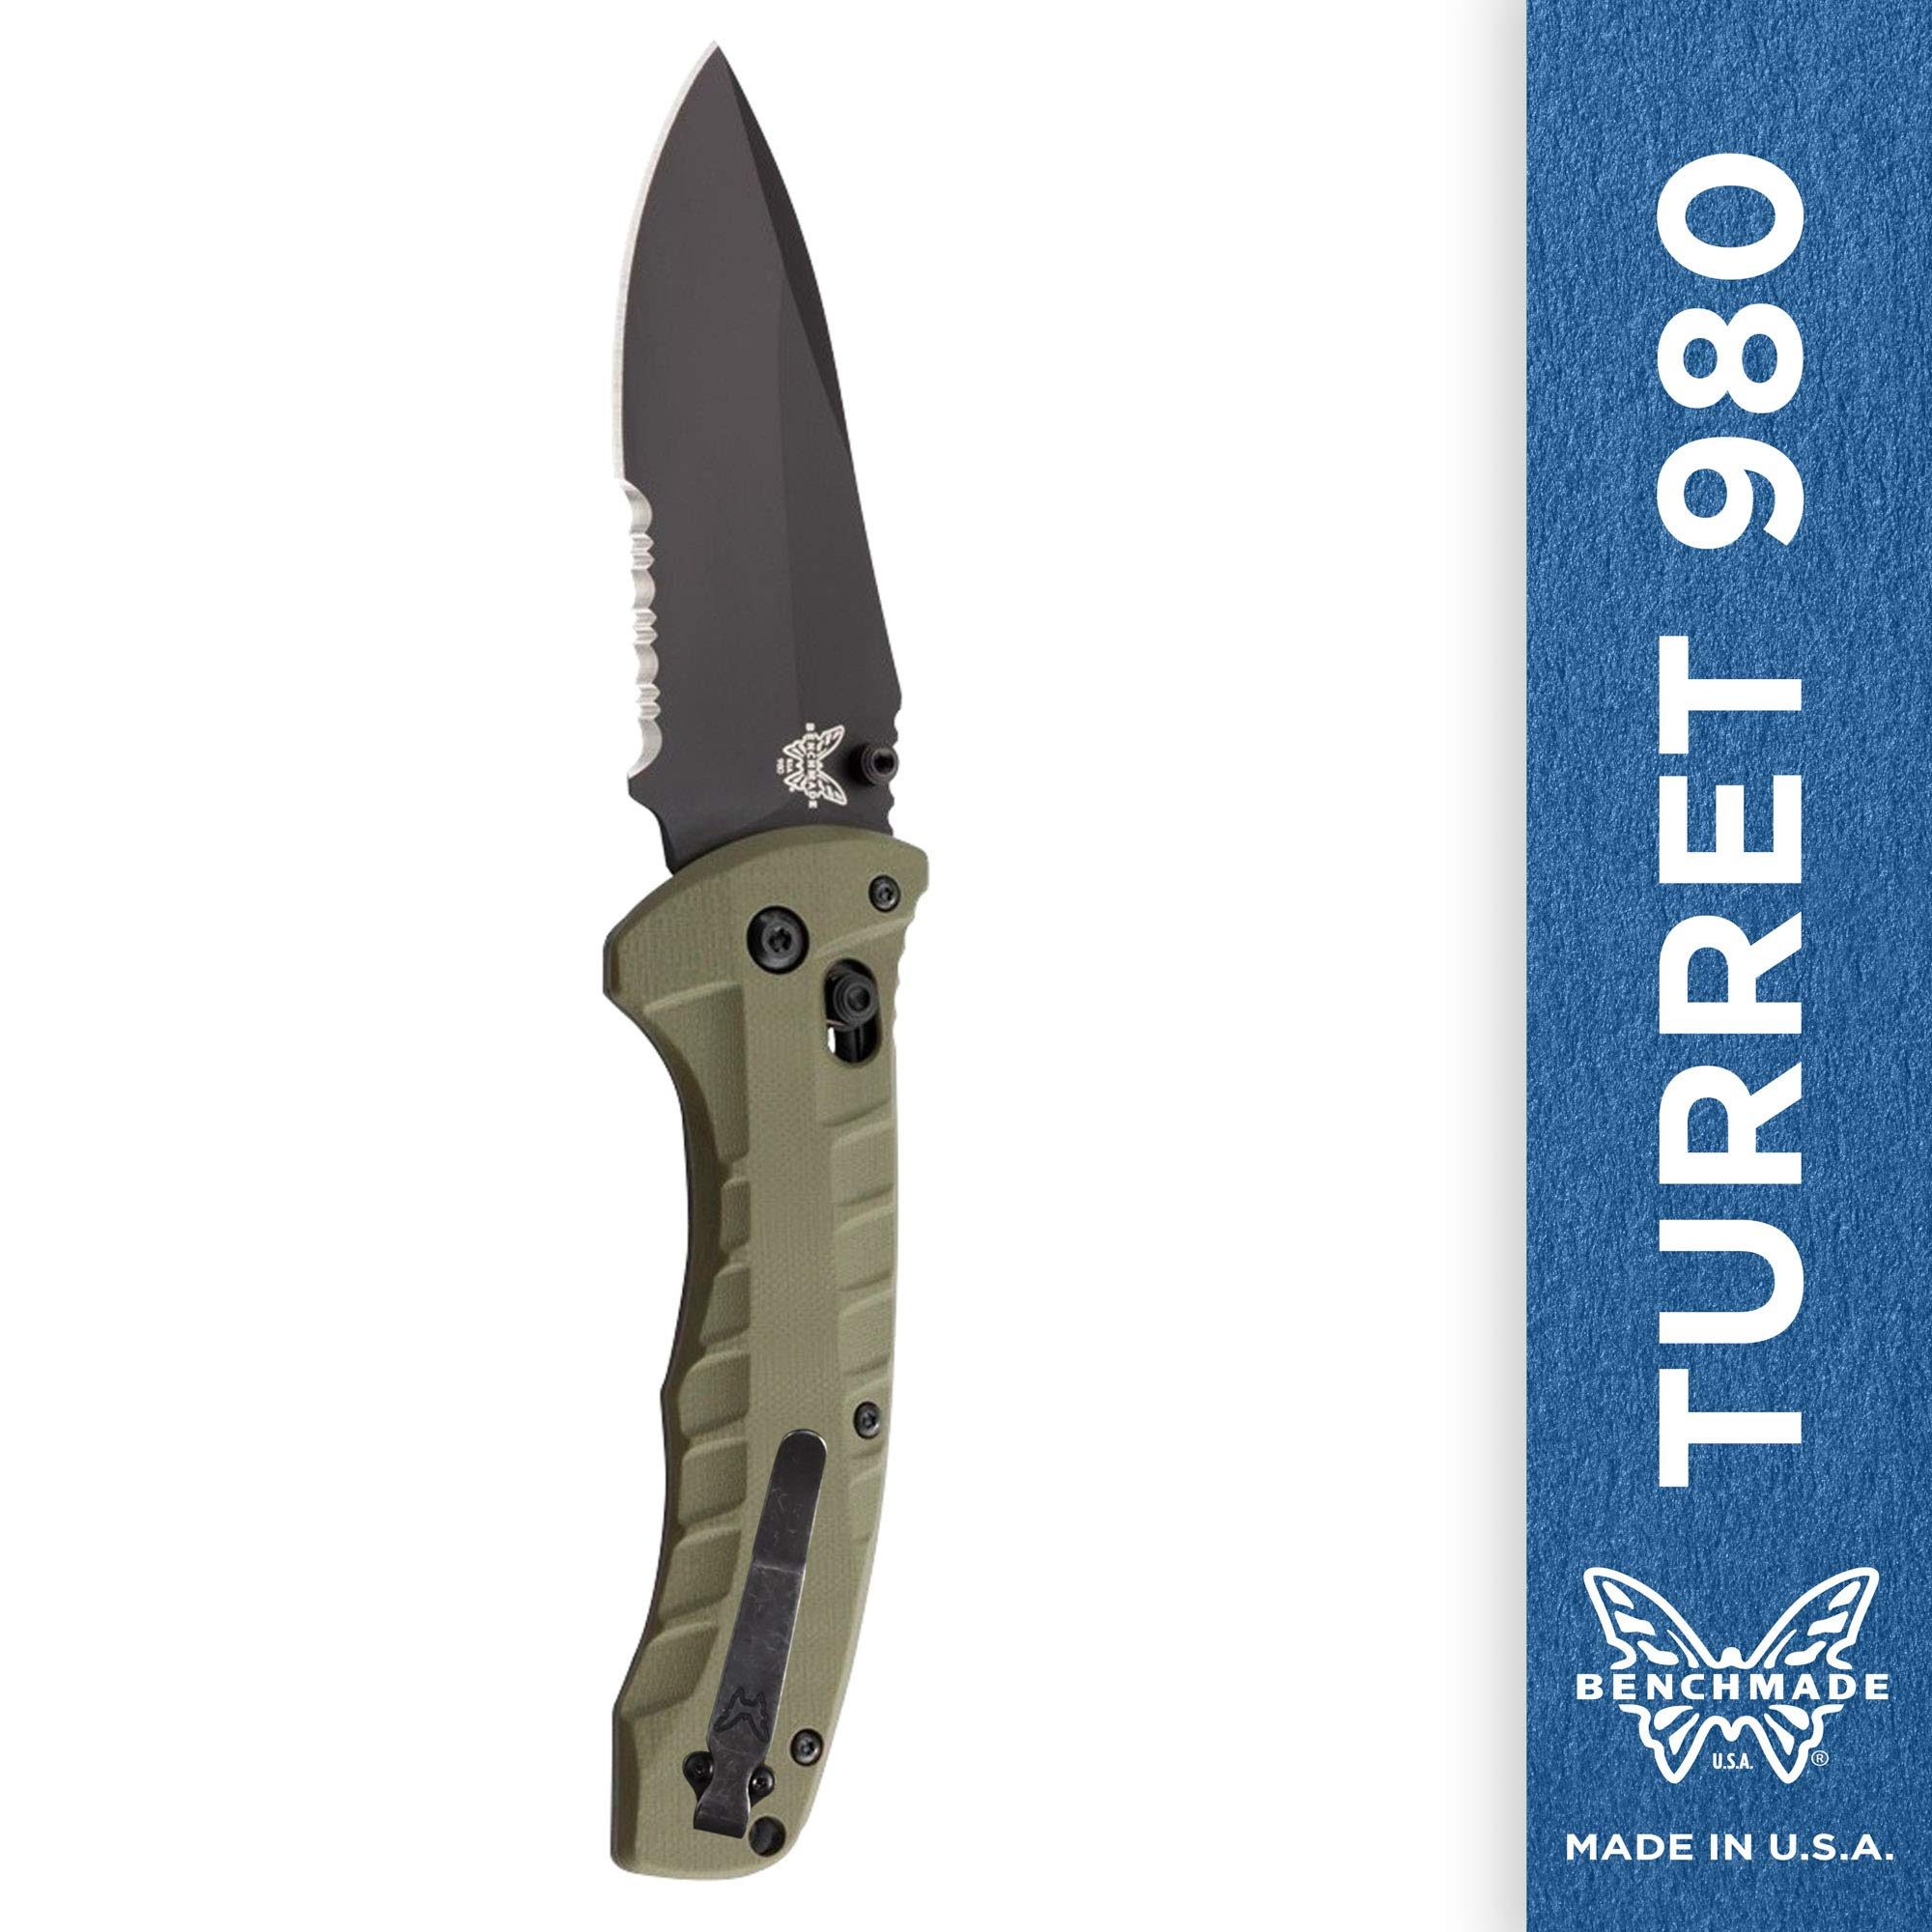 Benchmade - Turret, Serrated, Olive Drab